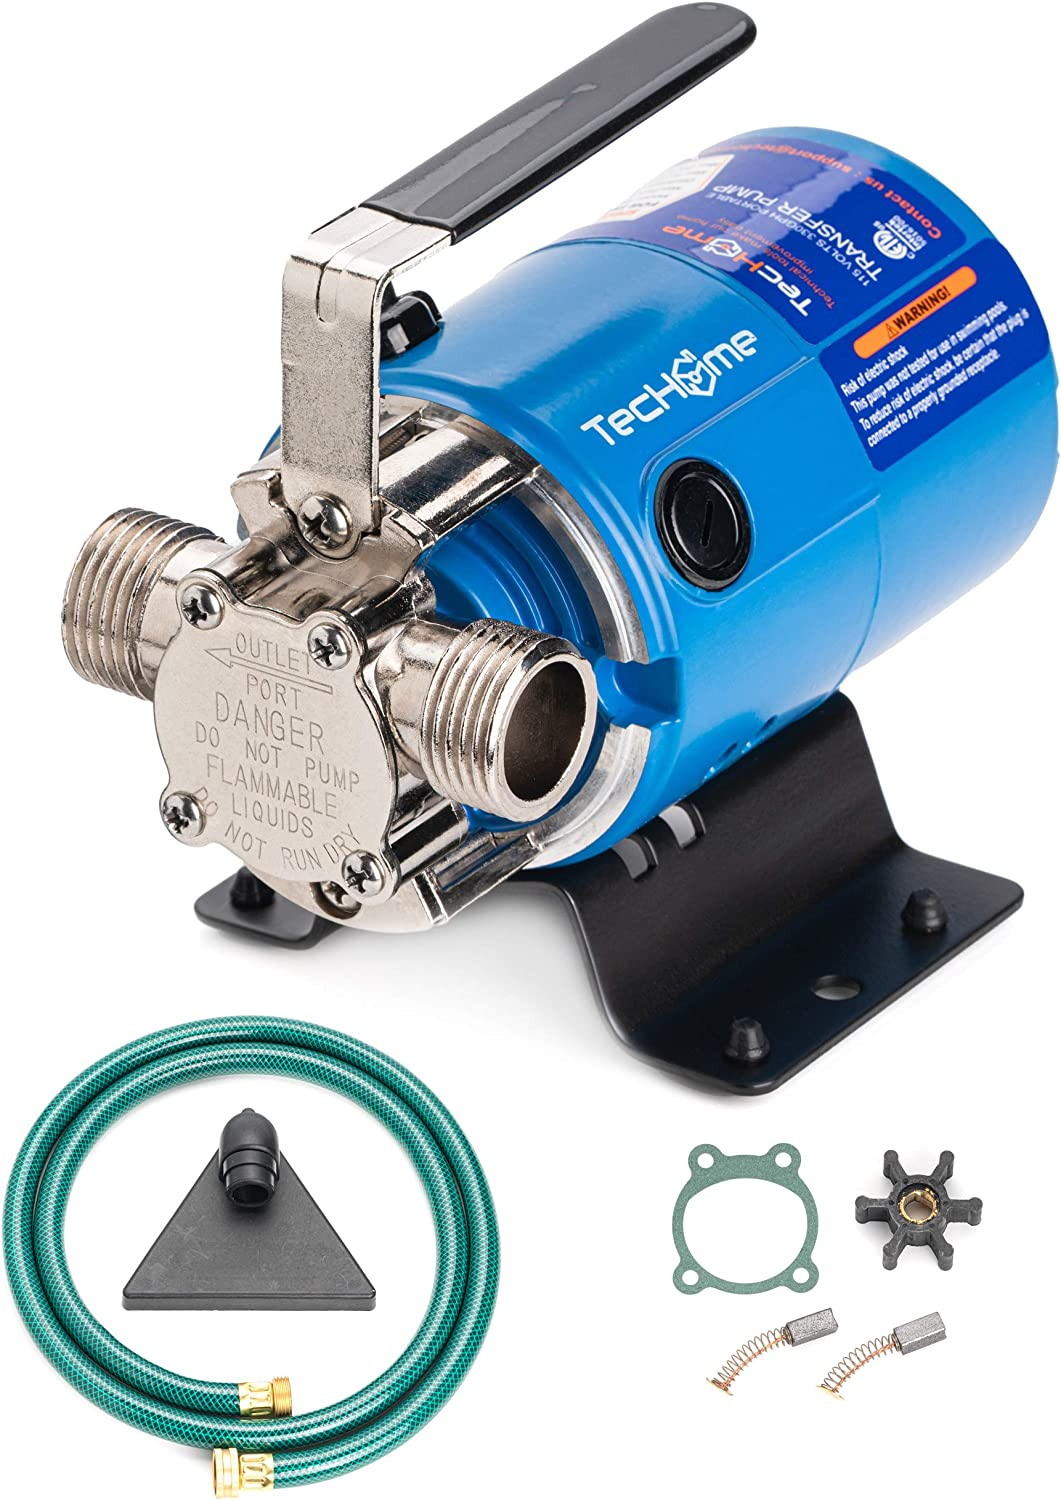 TecHome 115Volt 1/10HP 330GPH Mini Portable Transfer Water Pump with Suction Hose Kit, Blue